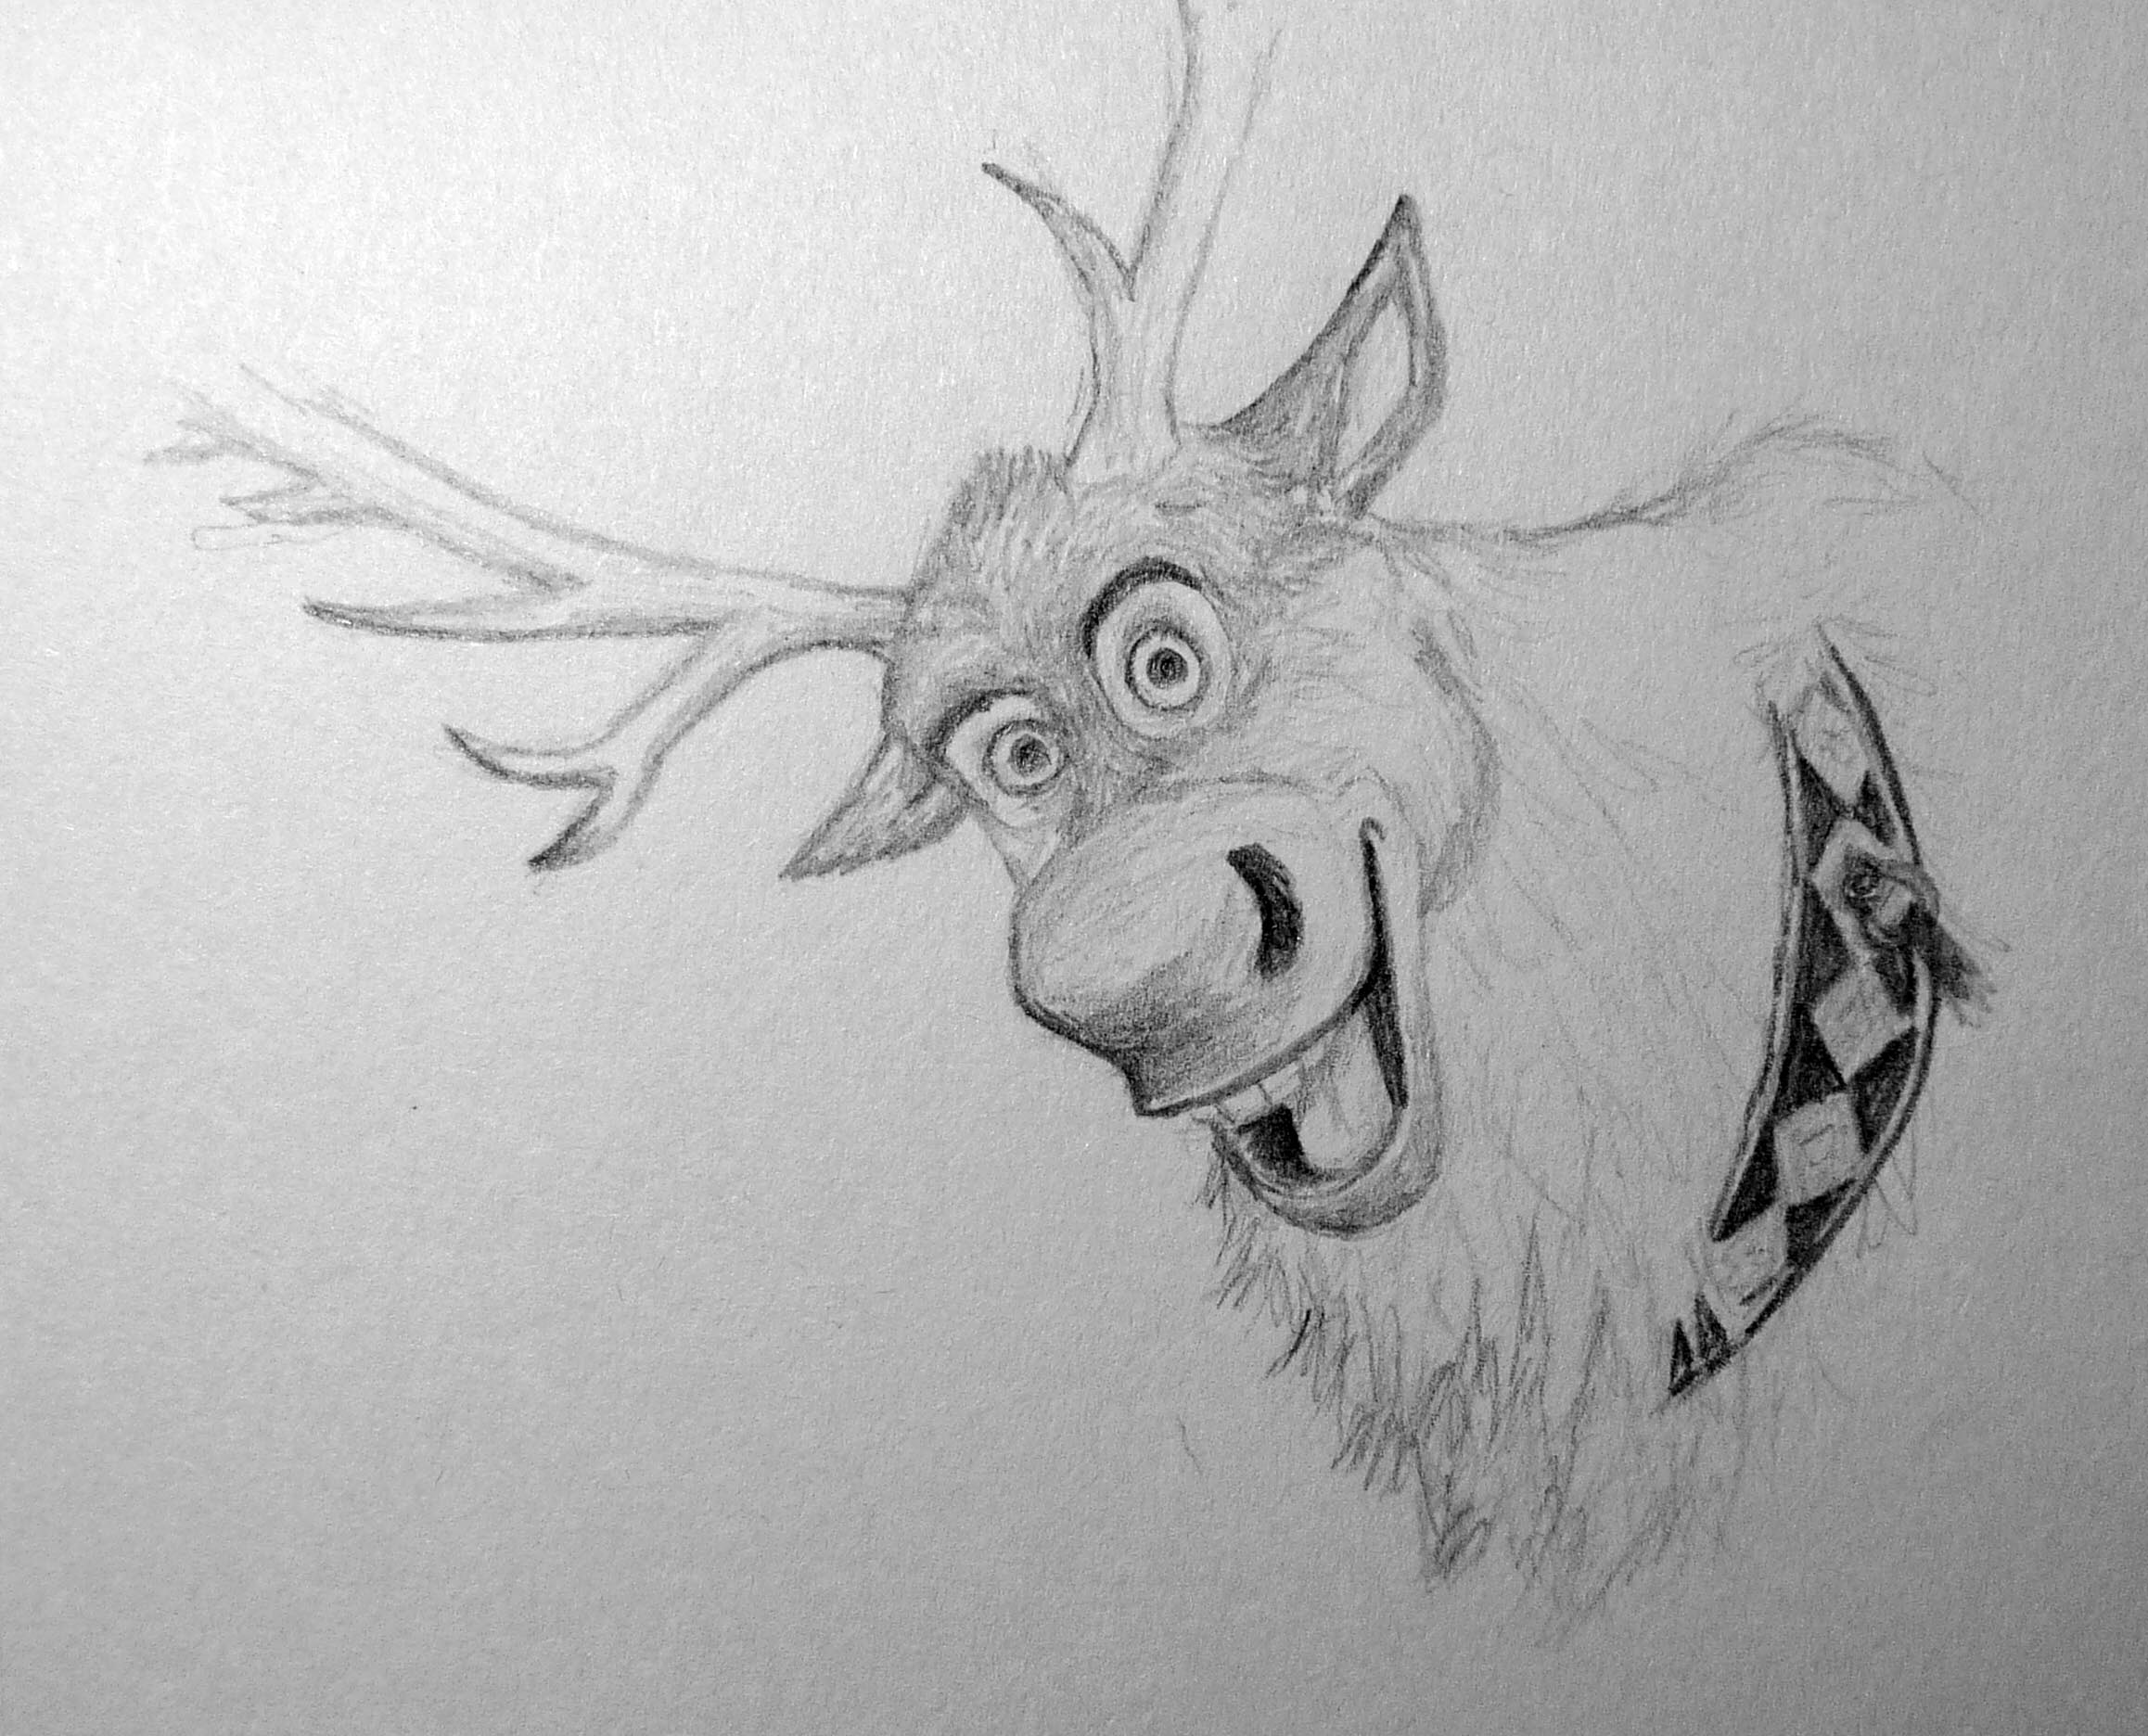 how to draw sven from frozen sven frozen drawing at paintingvalleycom explore to sven how frozen draw from